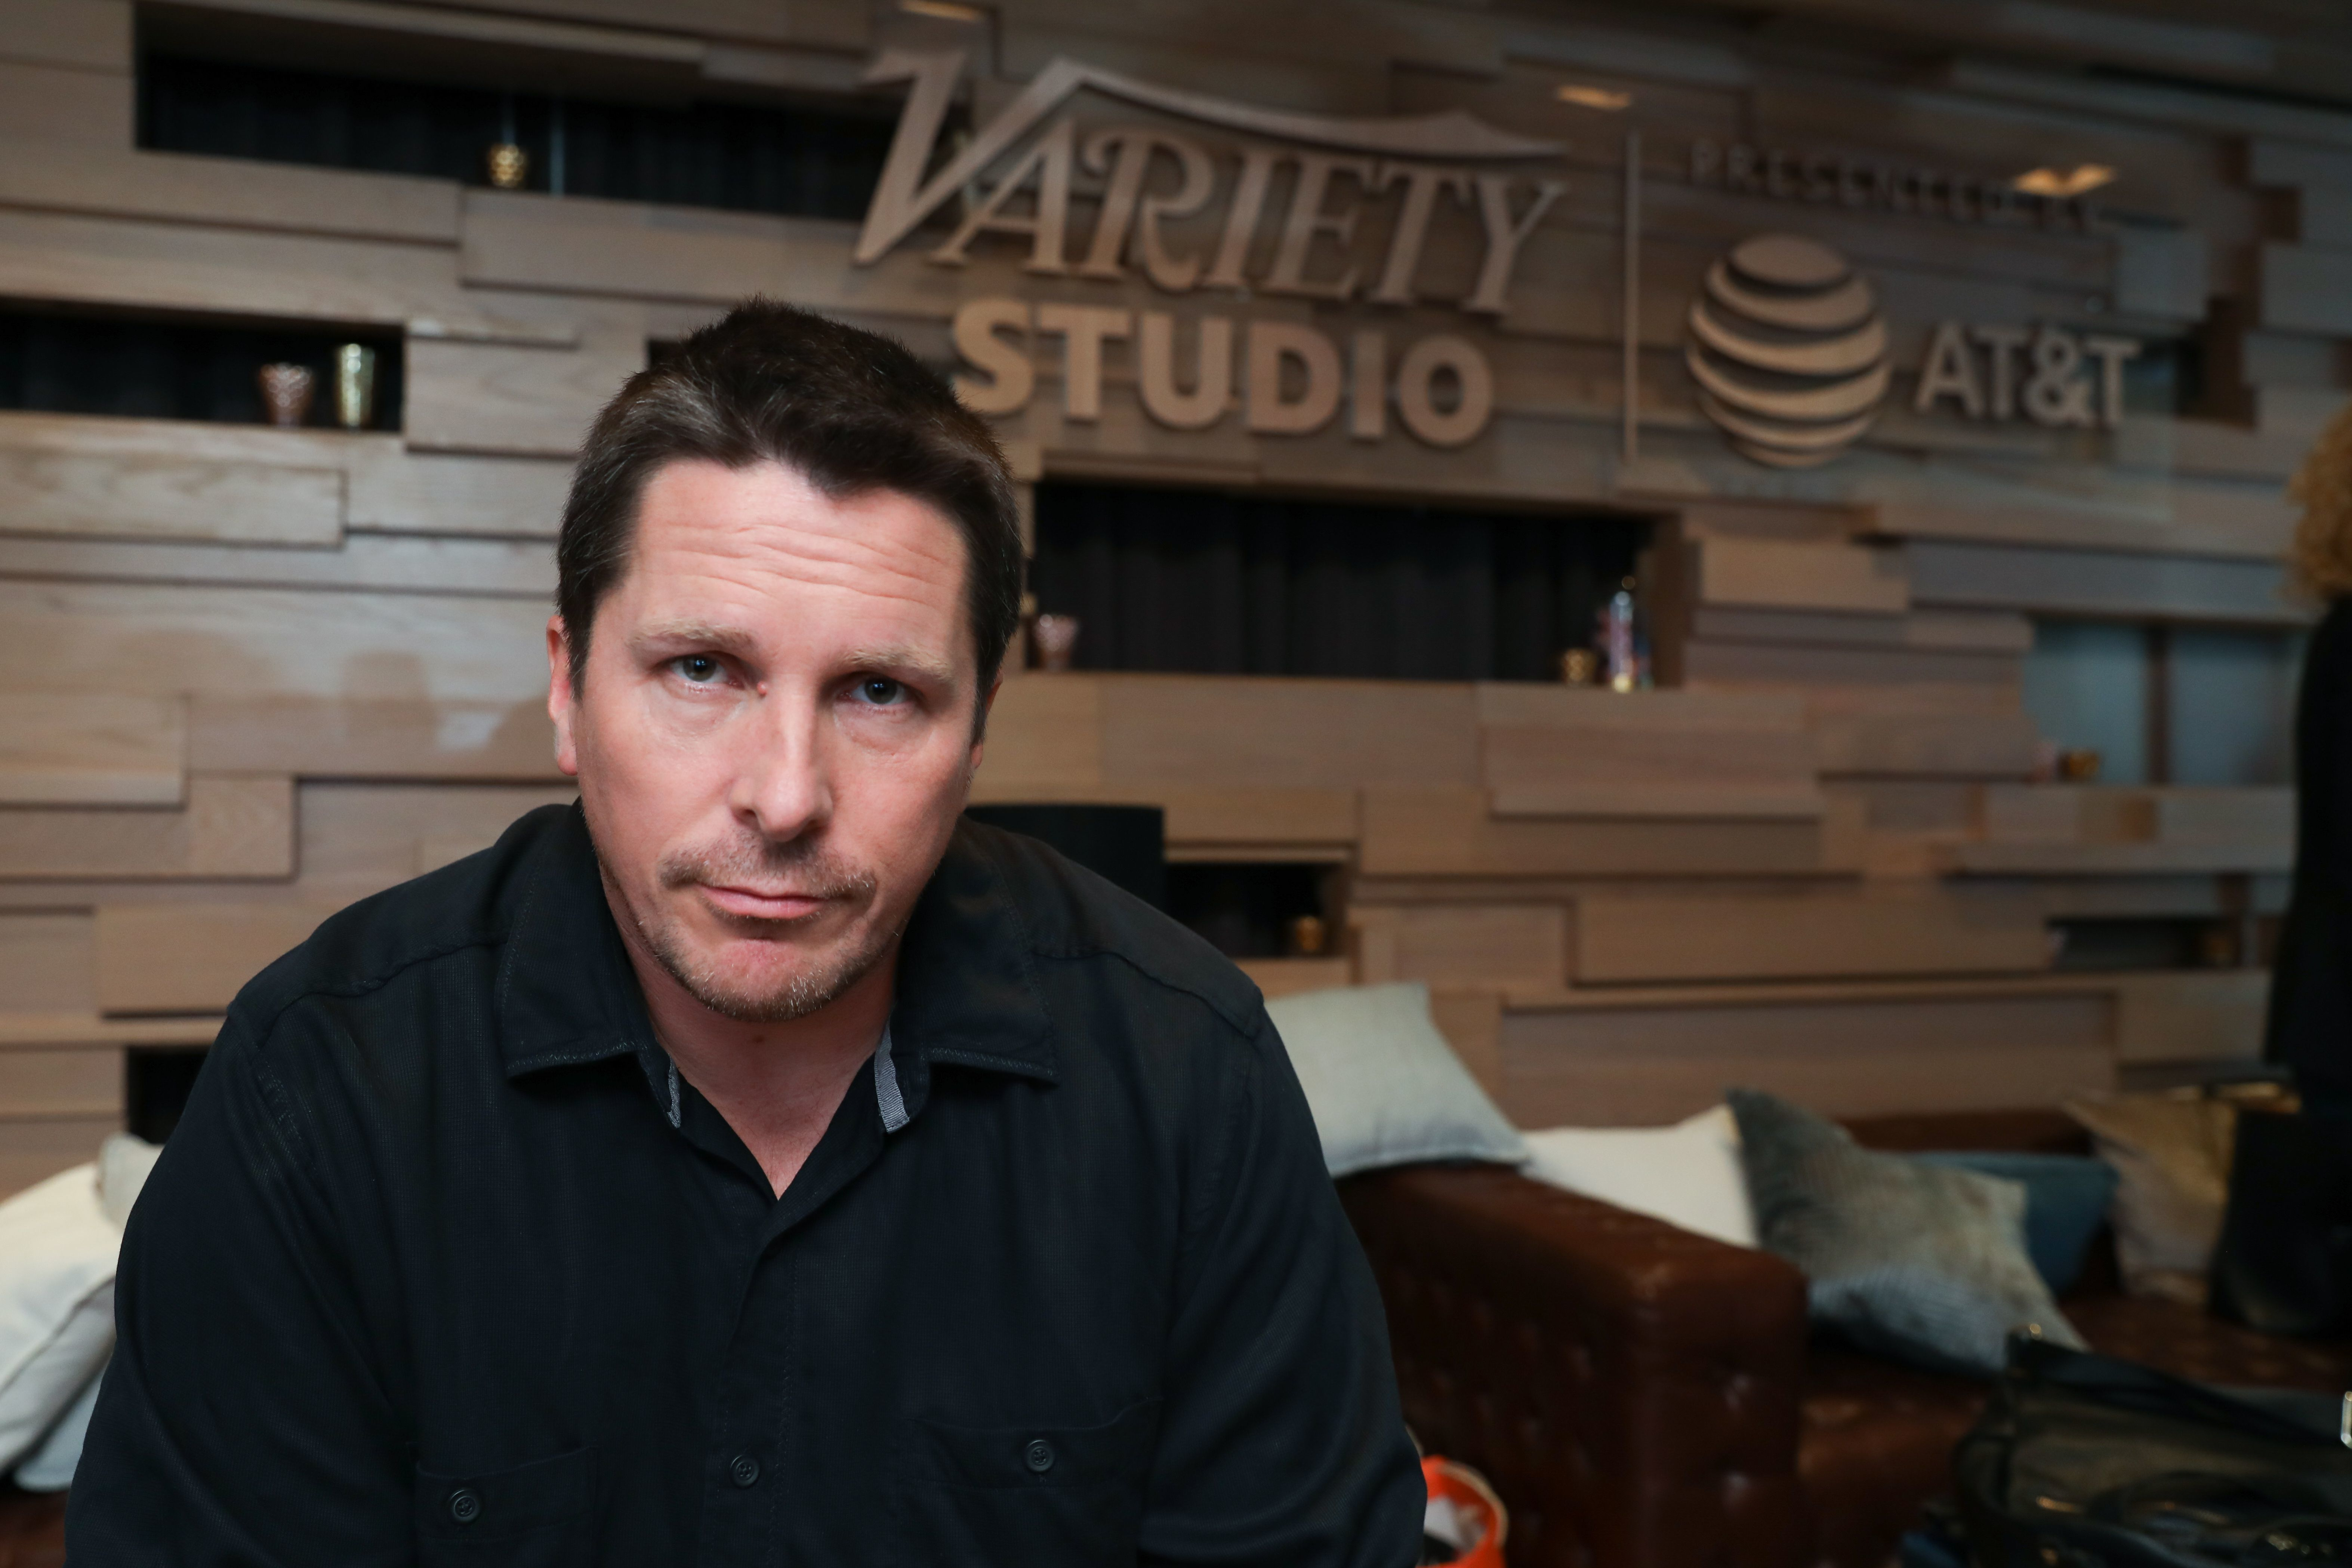 Christian Bale attends the Variety Studio at TIFF presented by AT&T at Toronto International Film Festival on Sept. 11, 2017.